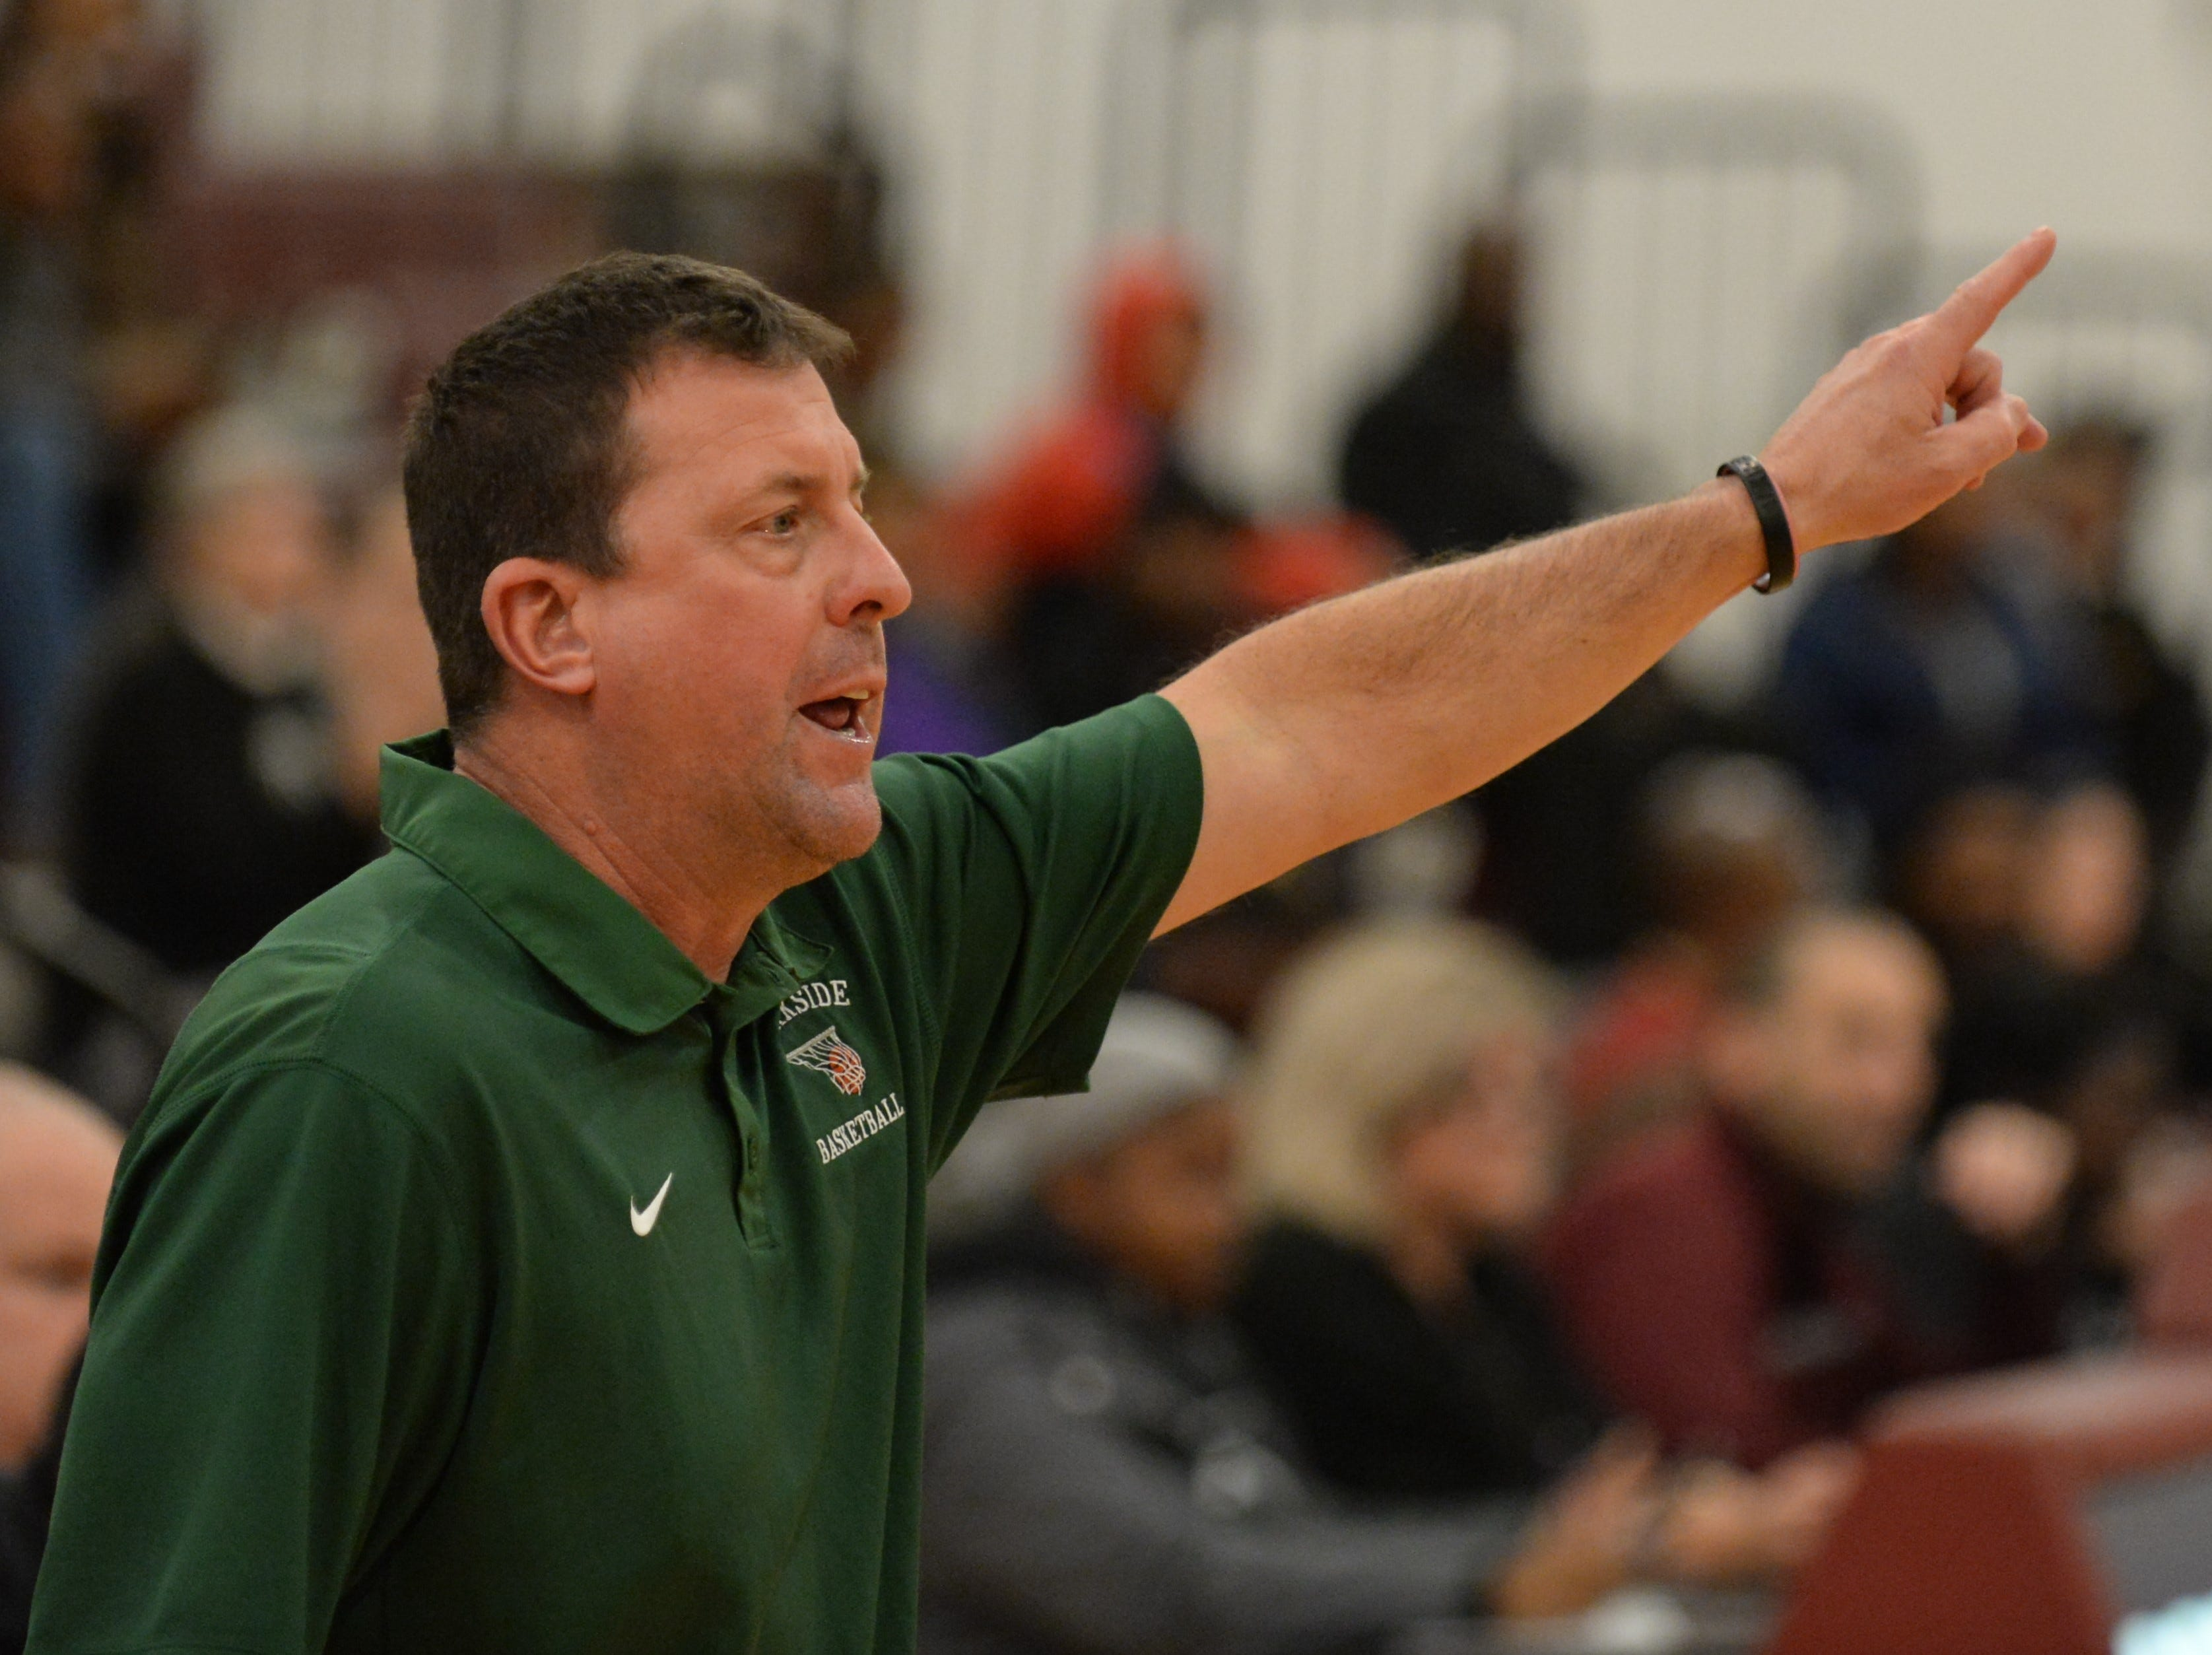 Parkside head coach David Byer signals to his team against Snow Hill on Tuesday, Jan. 15, 2019.